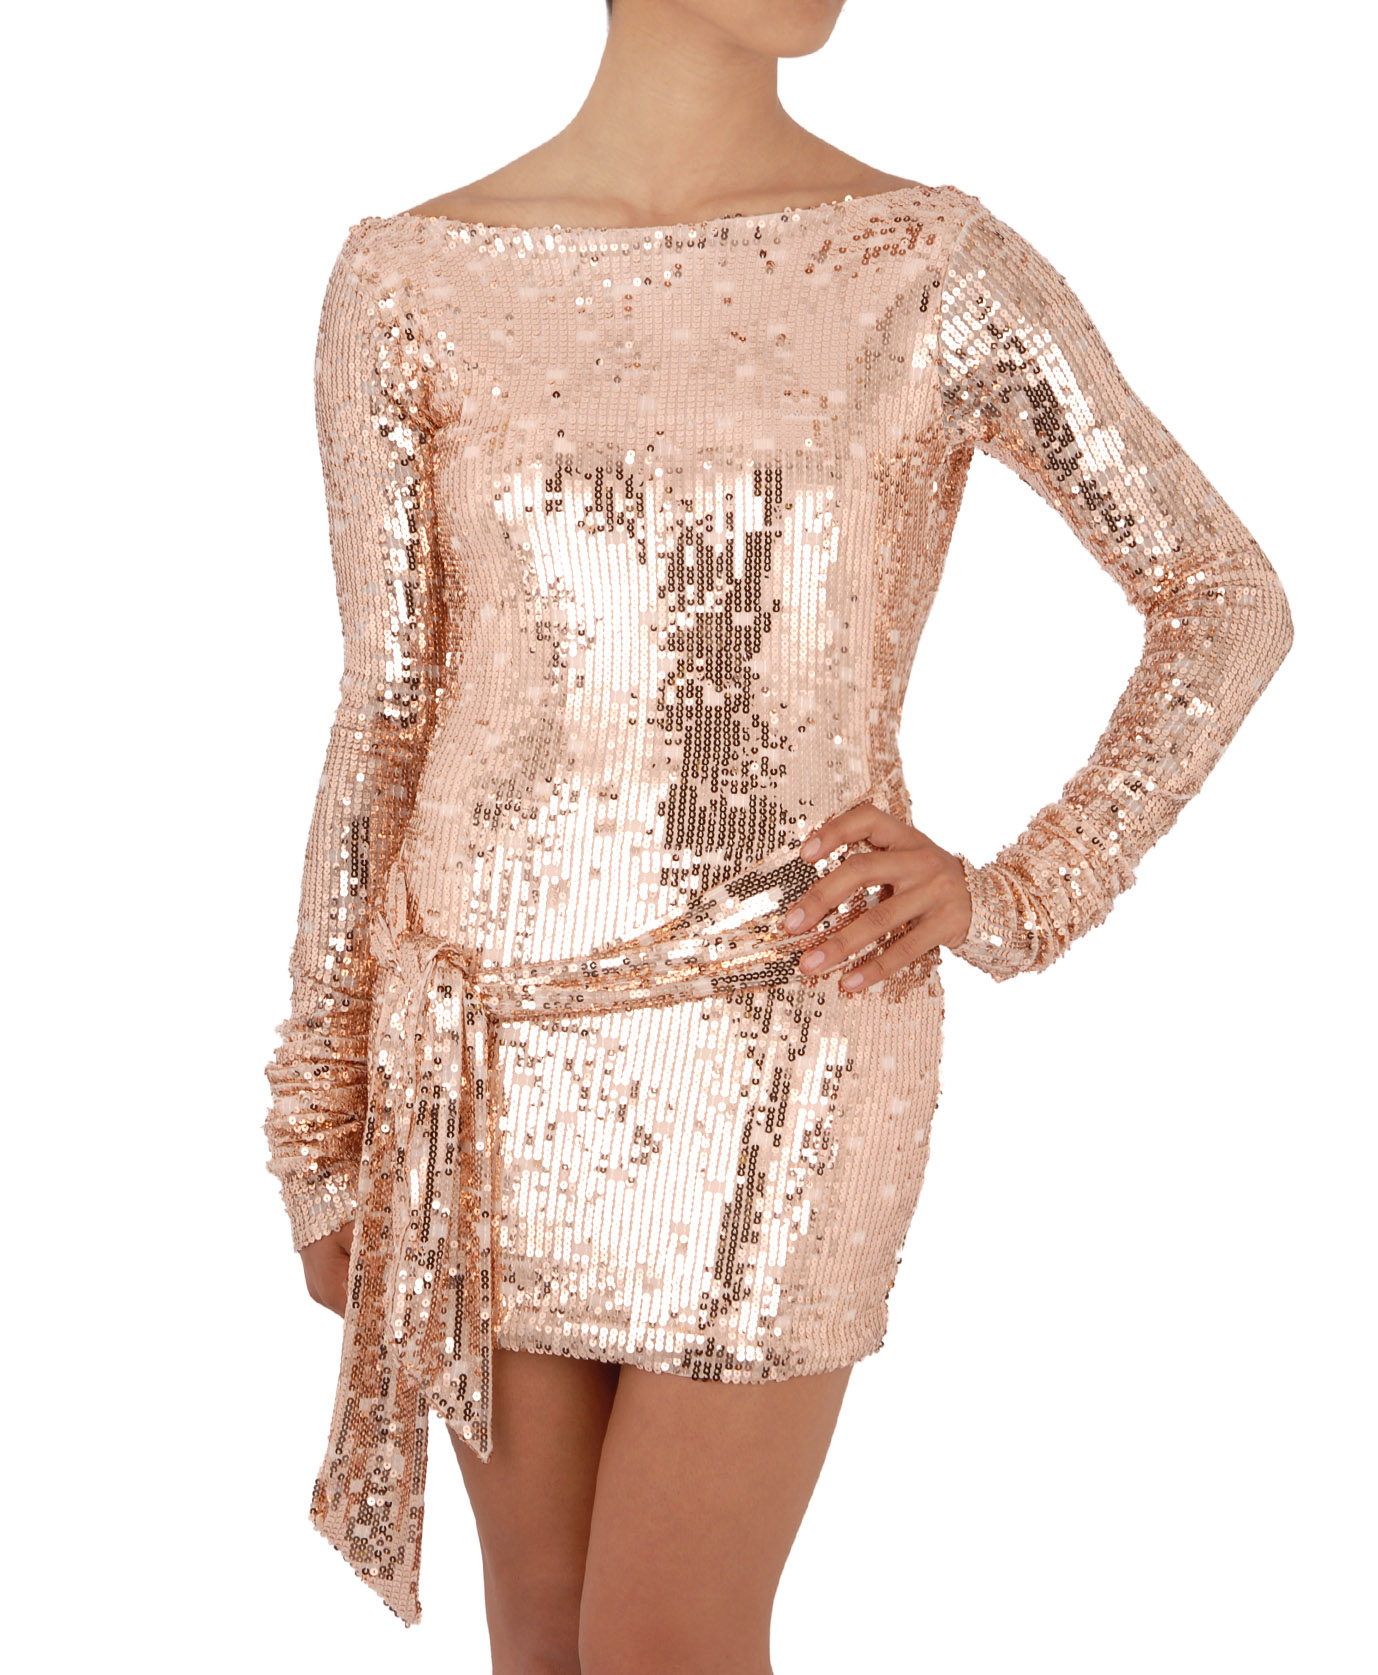 Sequin Mini Dress Picture Collection  Dressed Up Girl